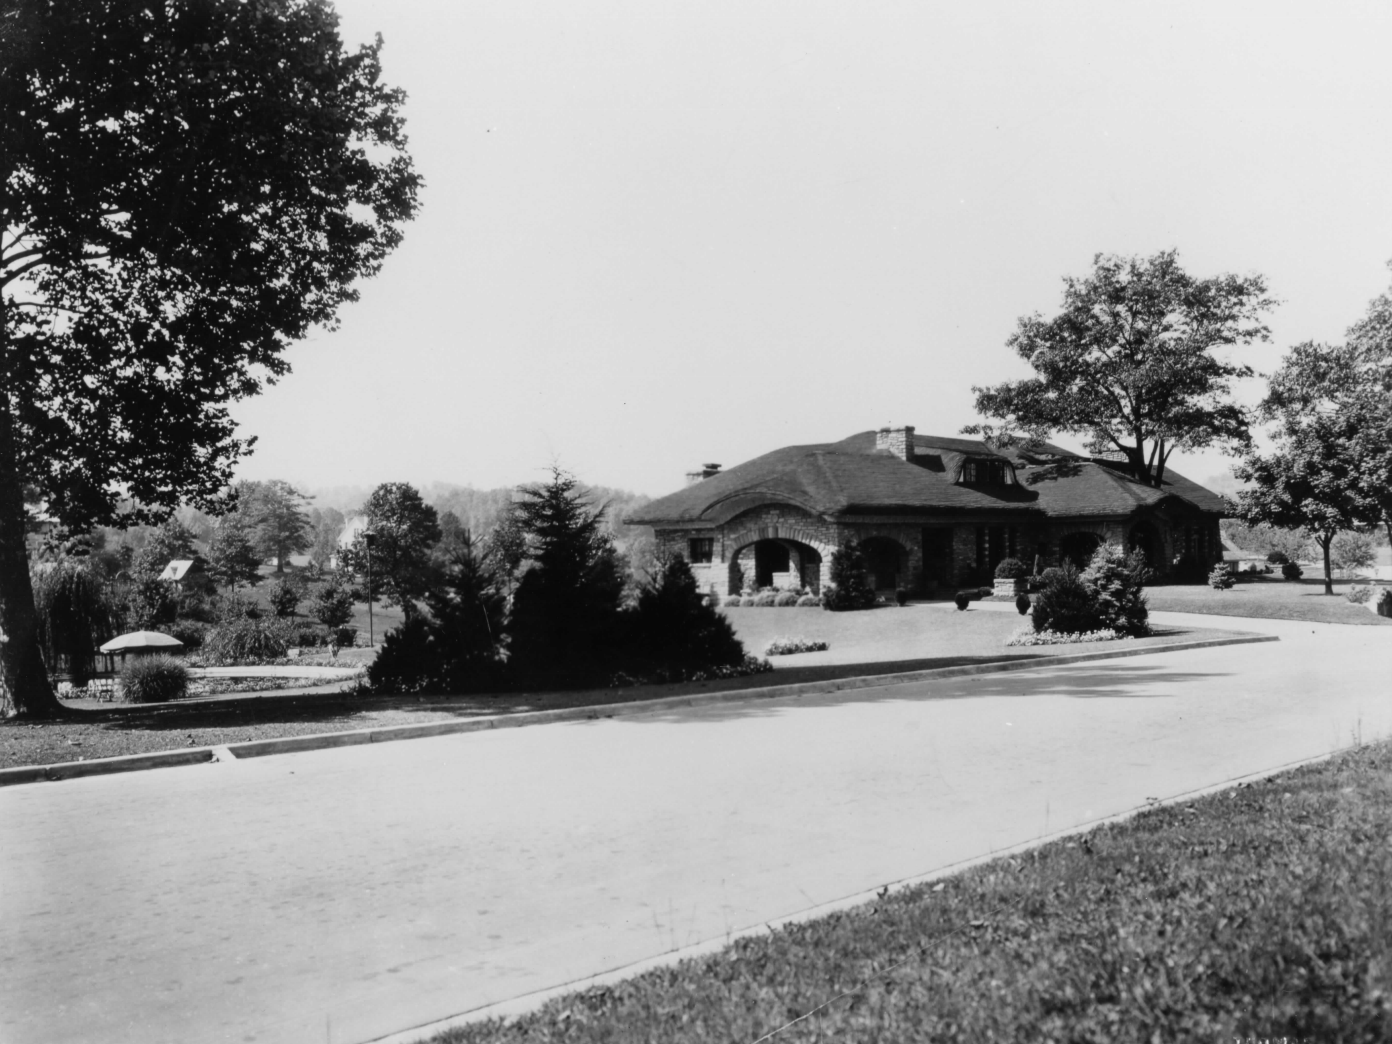 View of the house from Washington Blvd in 1925